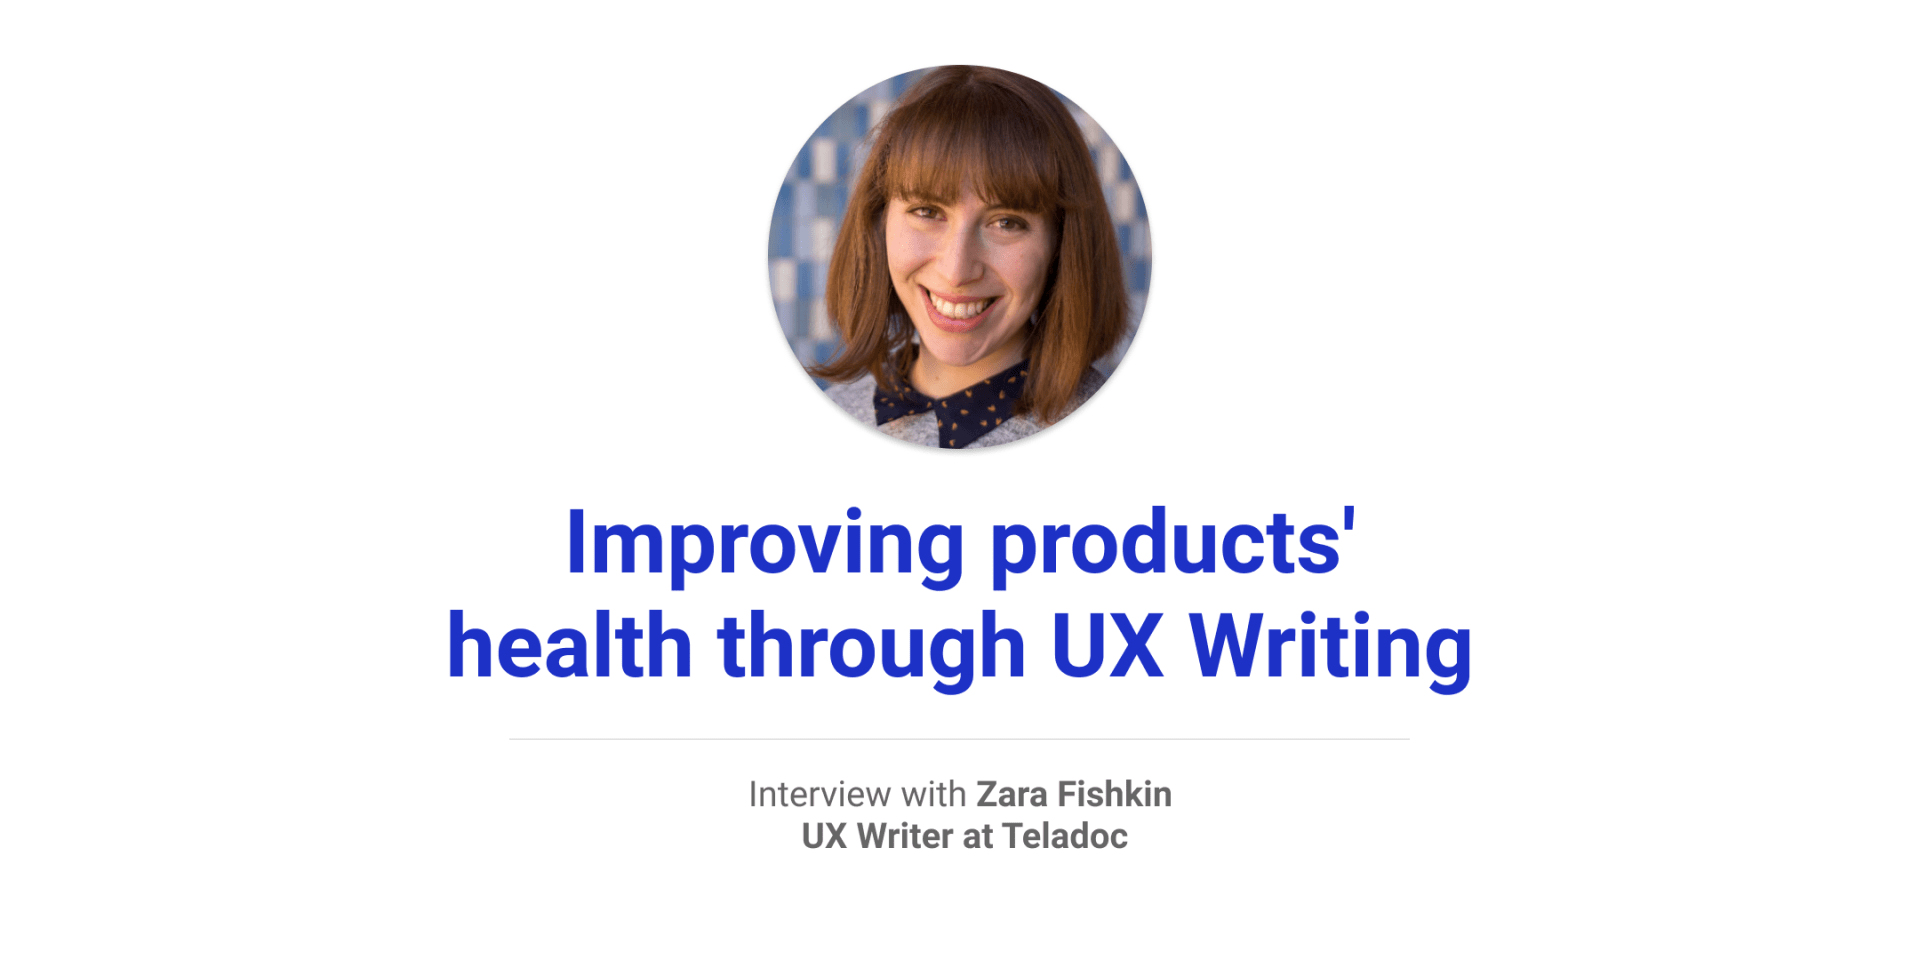 zara ux writer healthcare